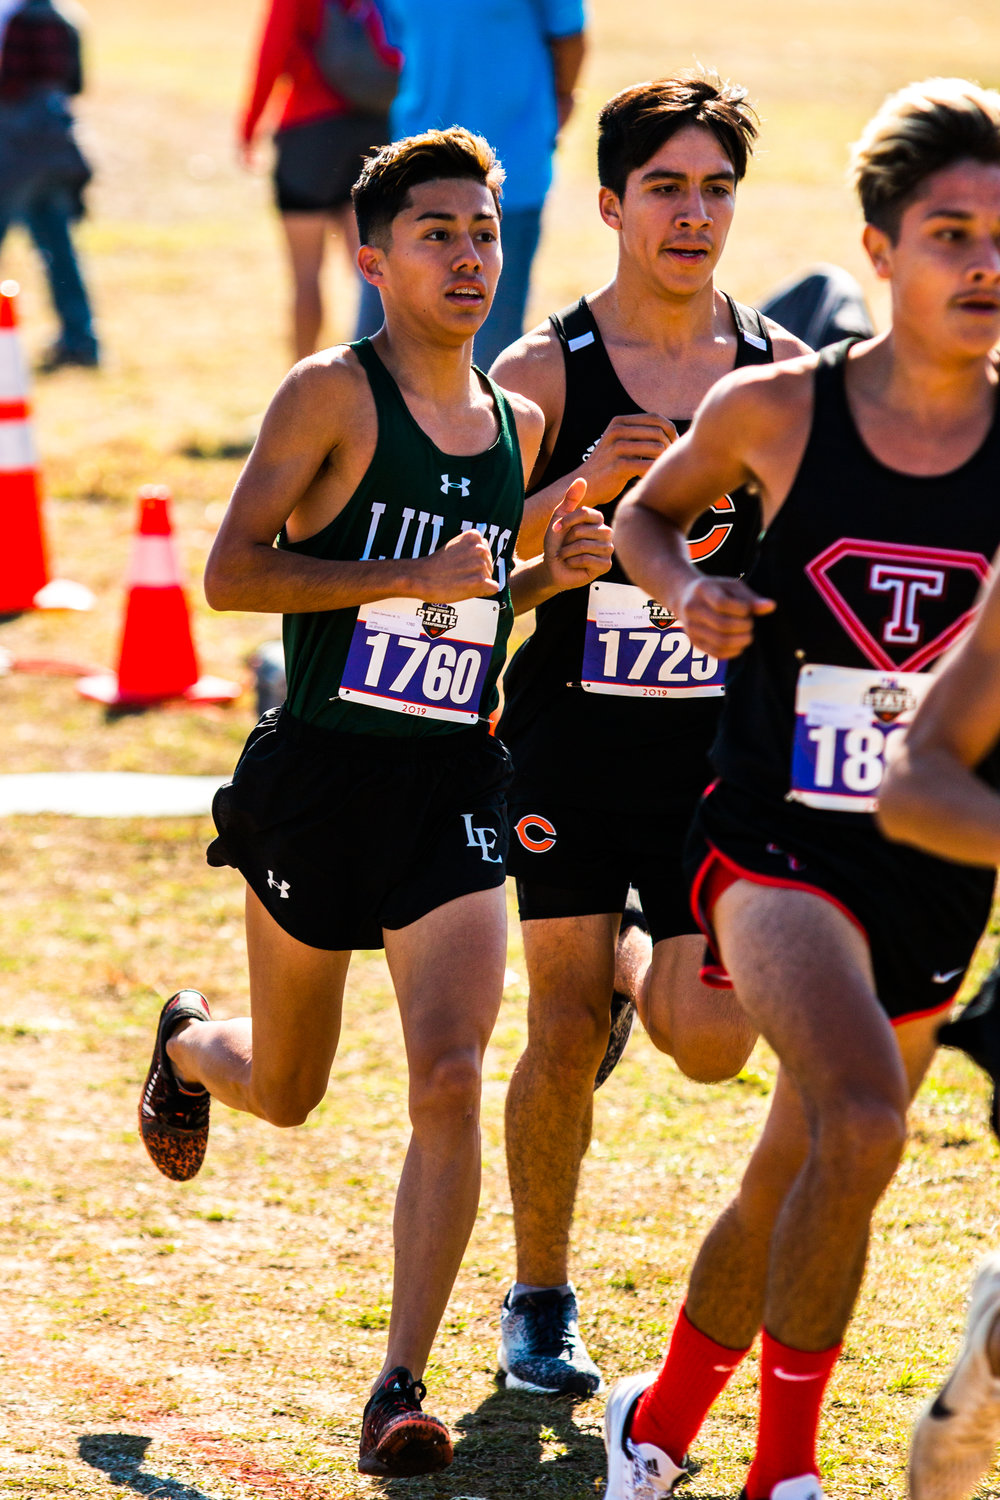 Edwin Zamudio is a state champion, winning the Class 3A boys race with his time of 15:35.87.